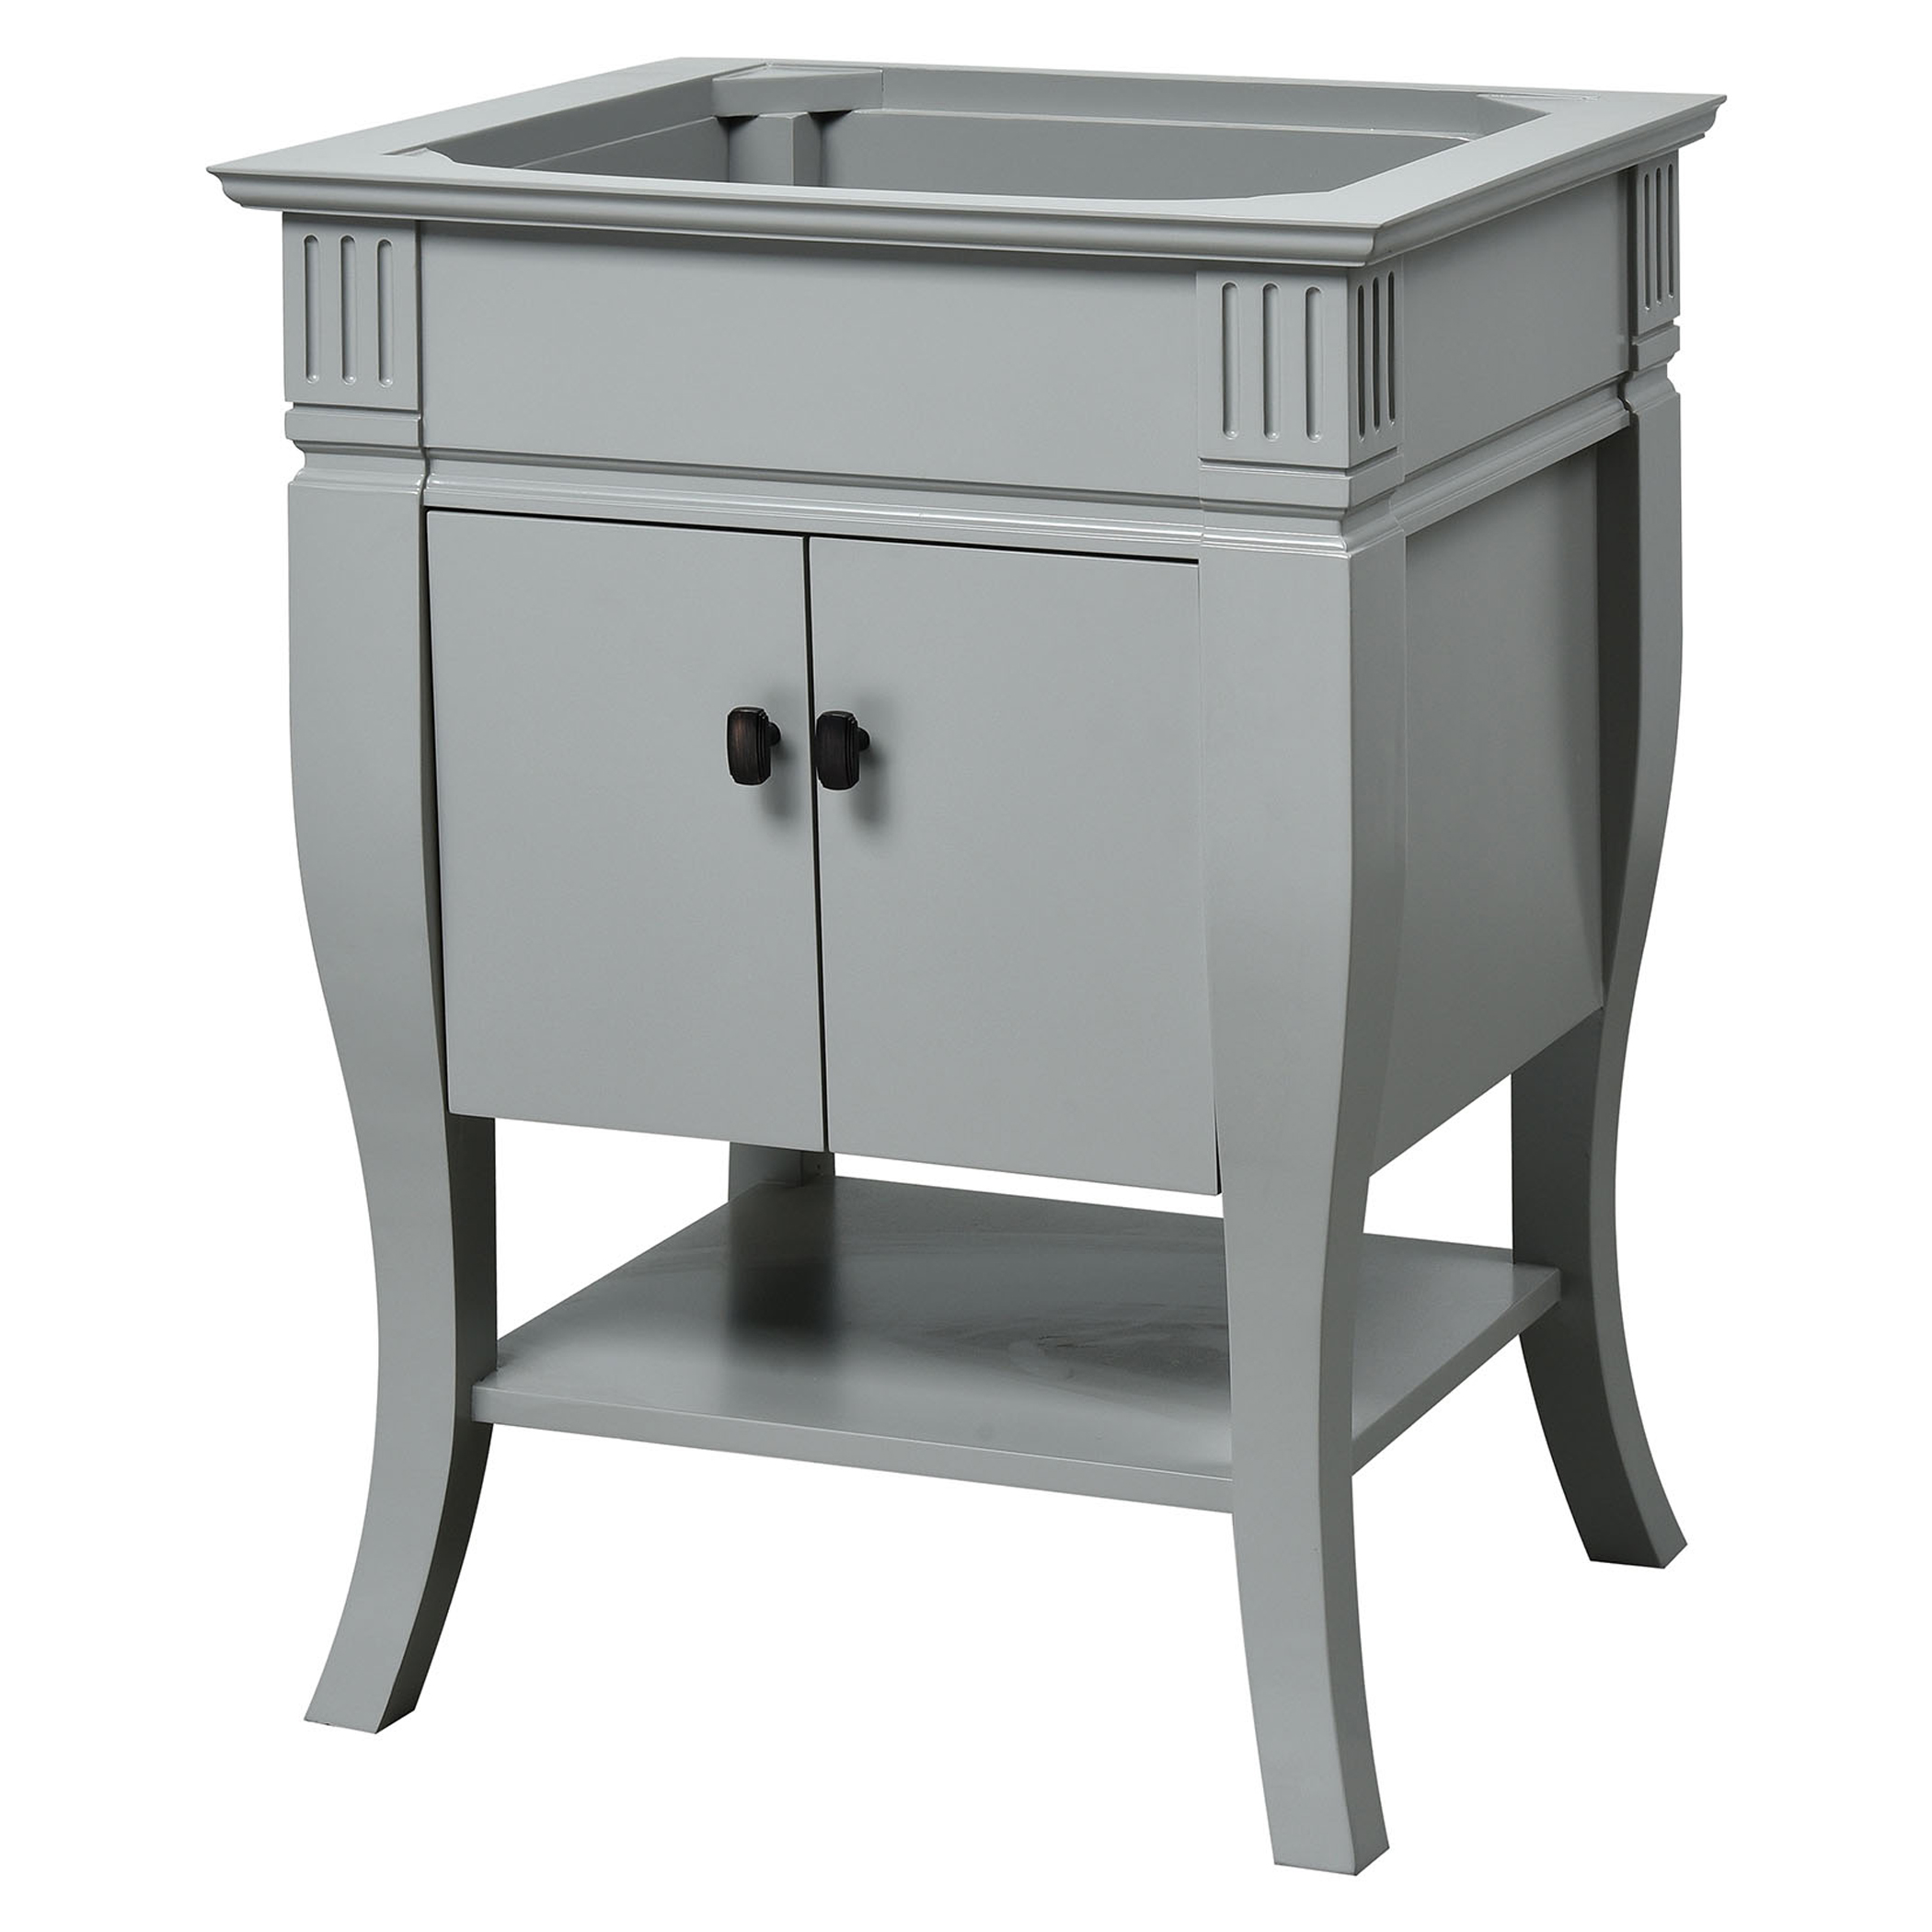 "24"" Transitional Bathroom Vanity - Grey Finish with Top and Mirror Options"